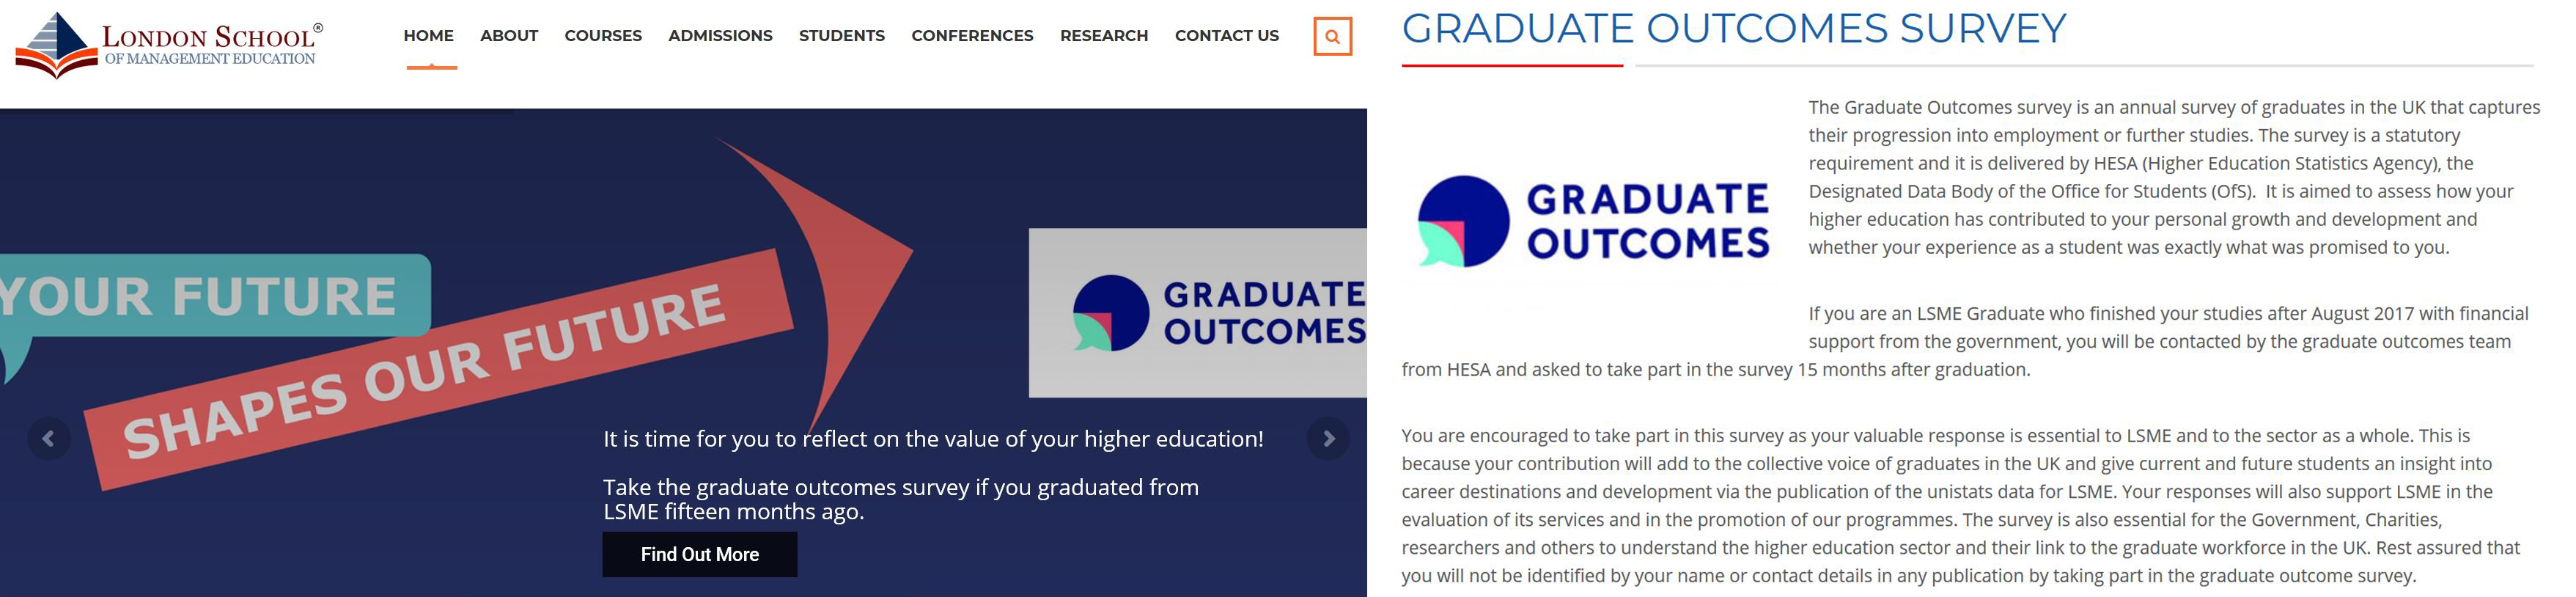 Examples of Graduate Outcomes content on LSME website